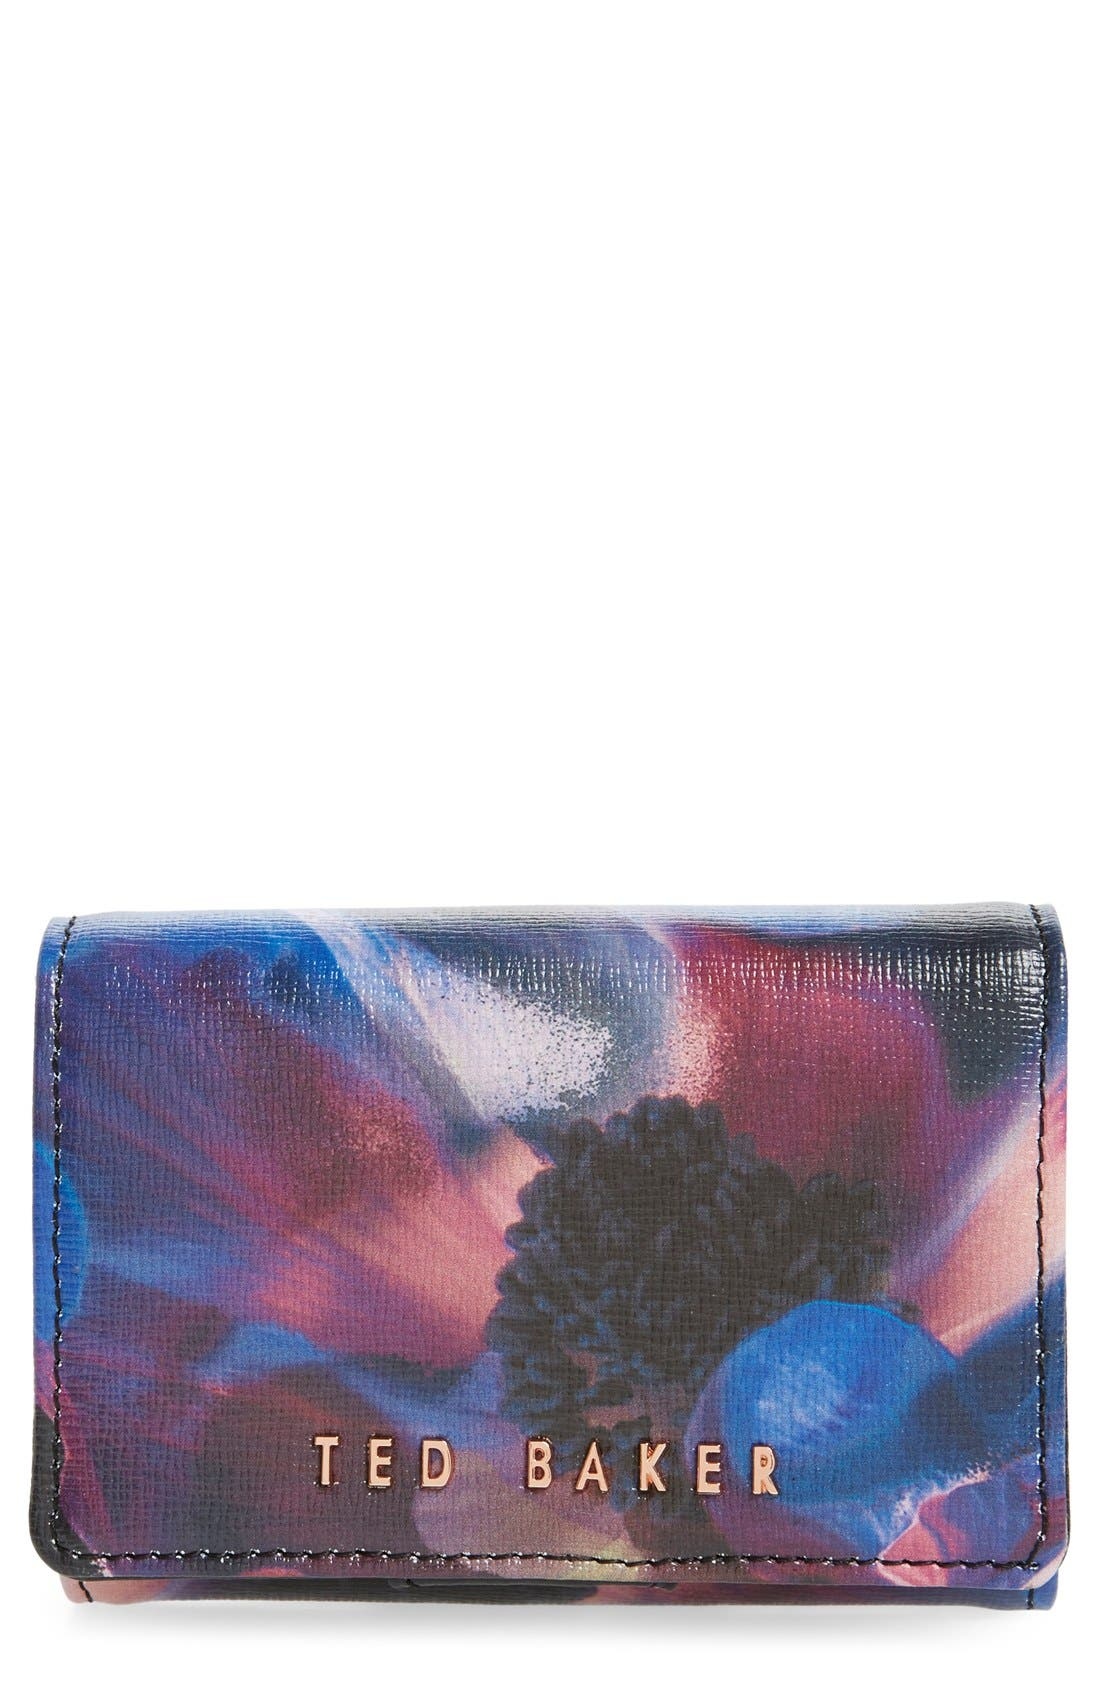 Alternate Image 1 Selected - Ted Baker London 'Cosmic Bloom' Floral Print Leather Wallet